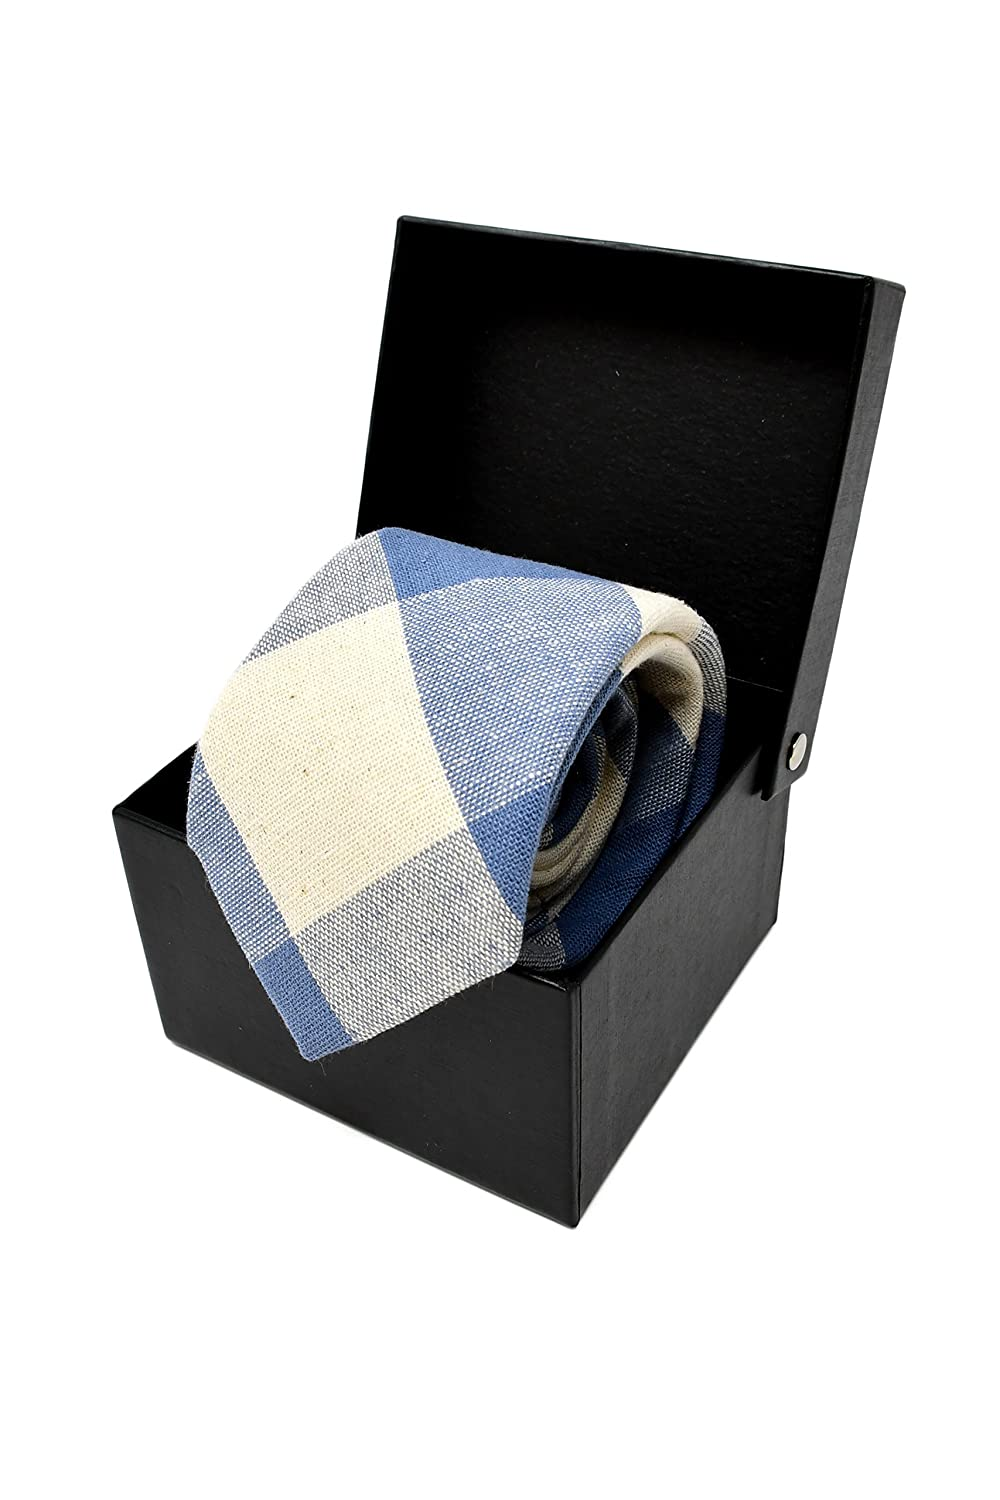 Elegante e Moderna - Oxford Collection Cravatta da uomo Azzurro a Quadri 100/% Lino ideale per un regalo, un matrimonio, con un abito, in ufficio. Classica